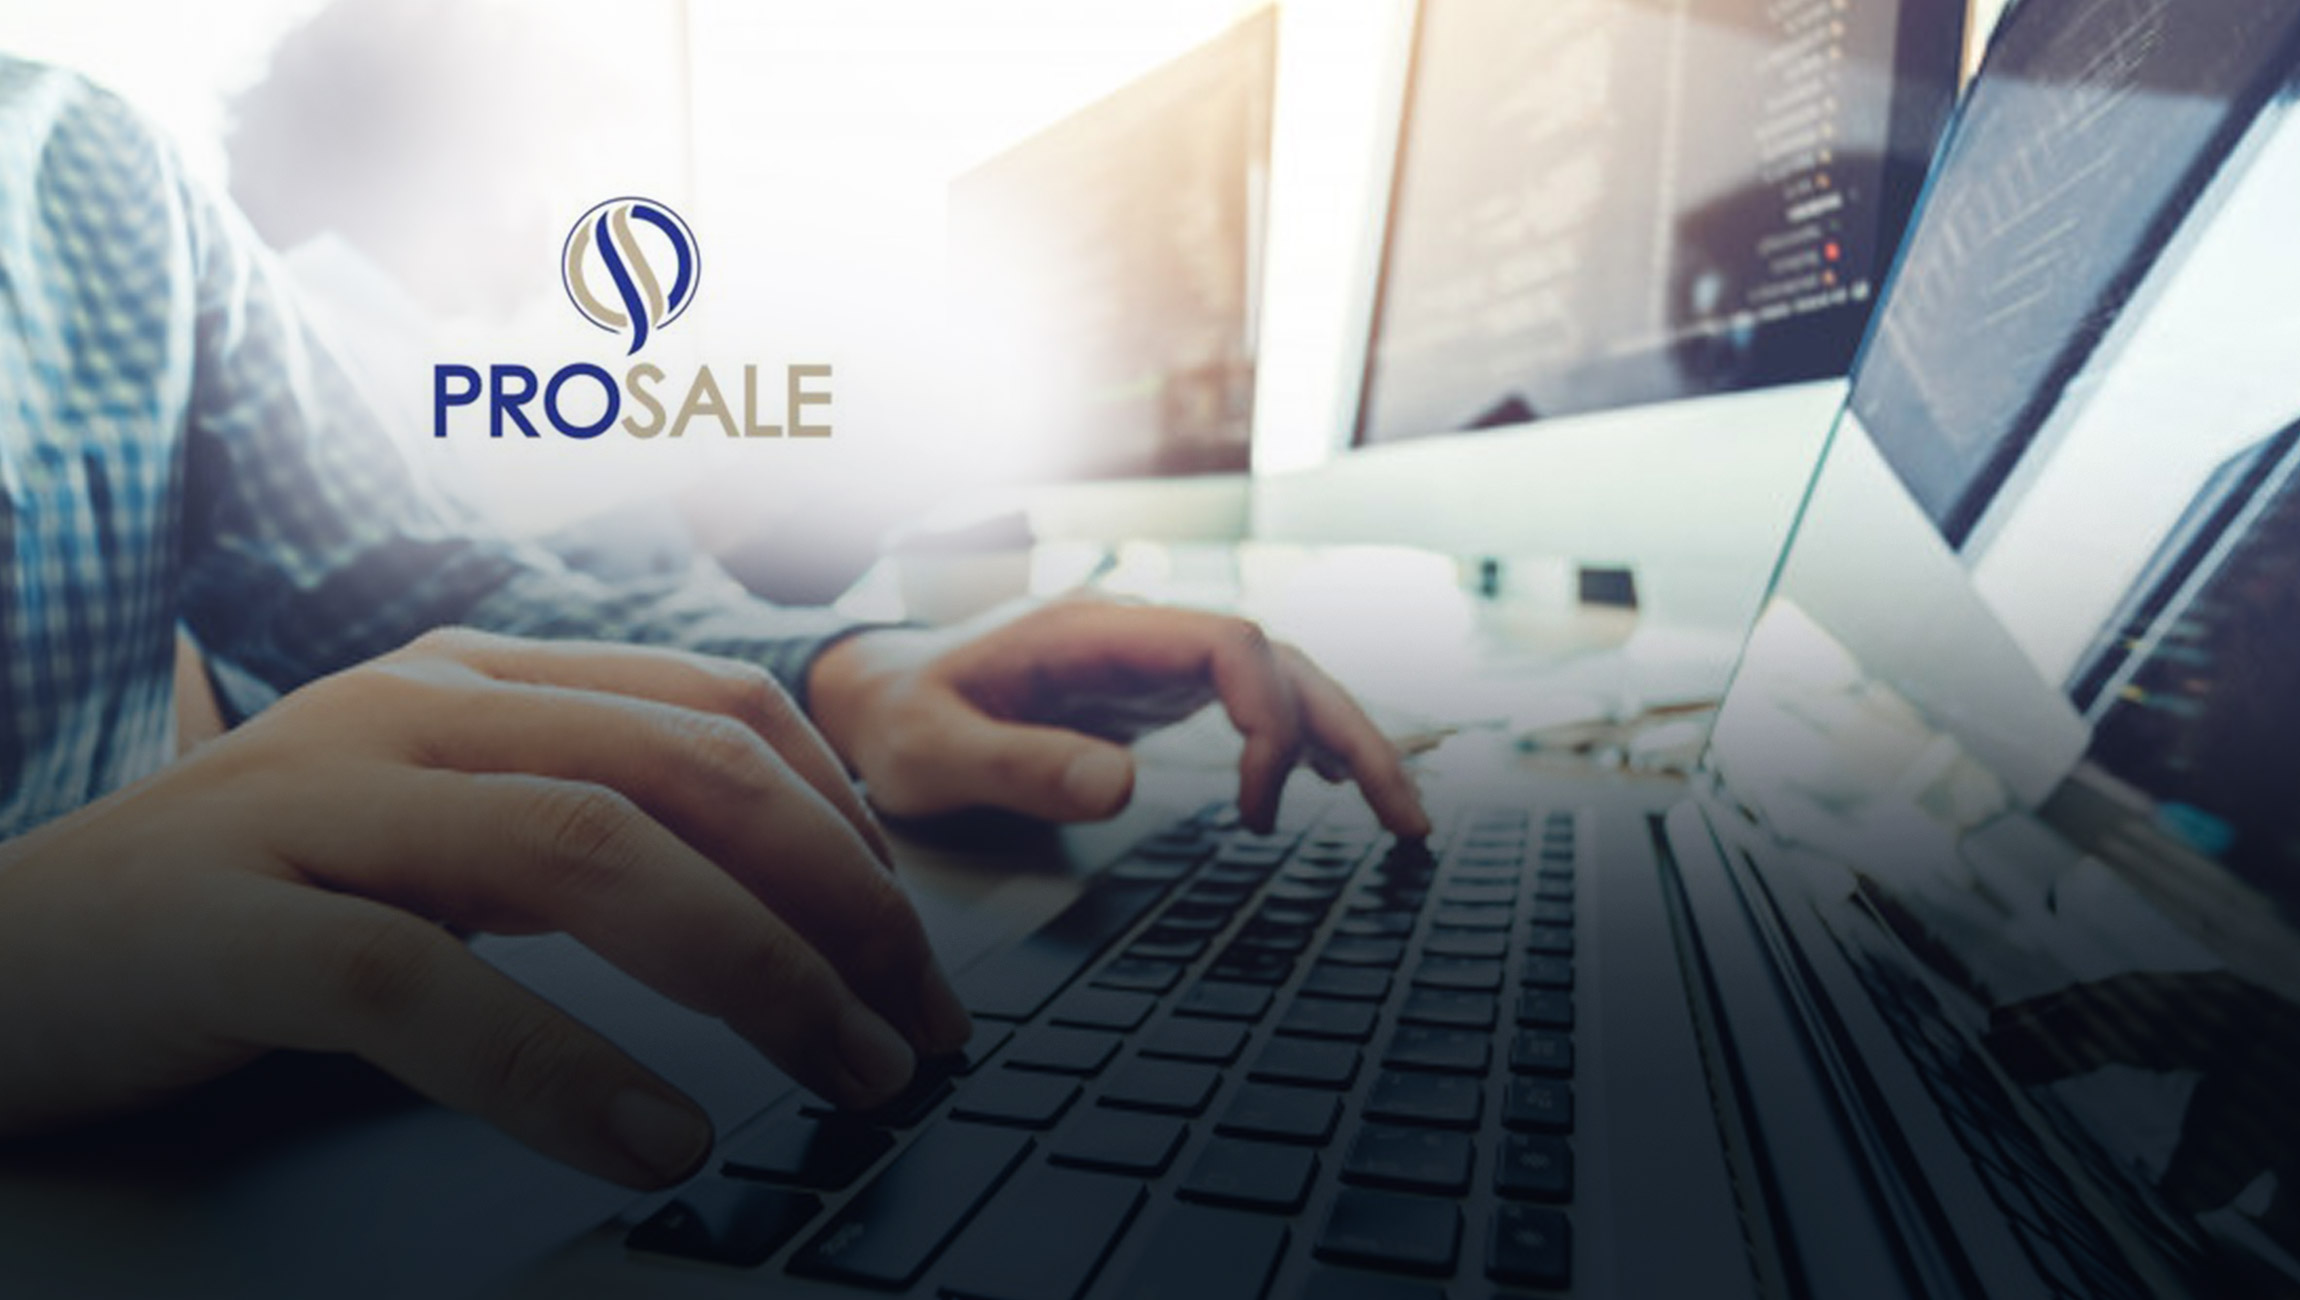 PROSALE Launches Industry's First SaaS-Based Estate Sale Management Software